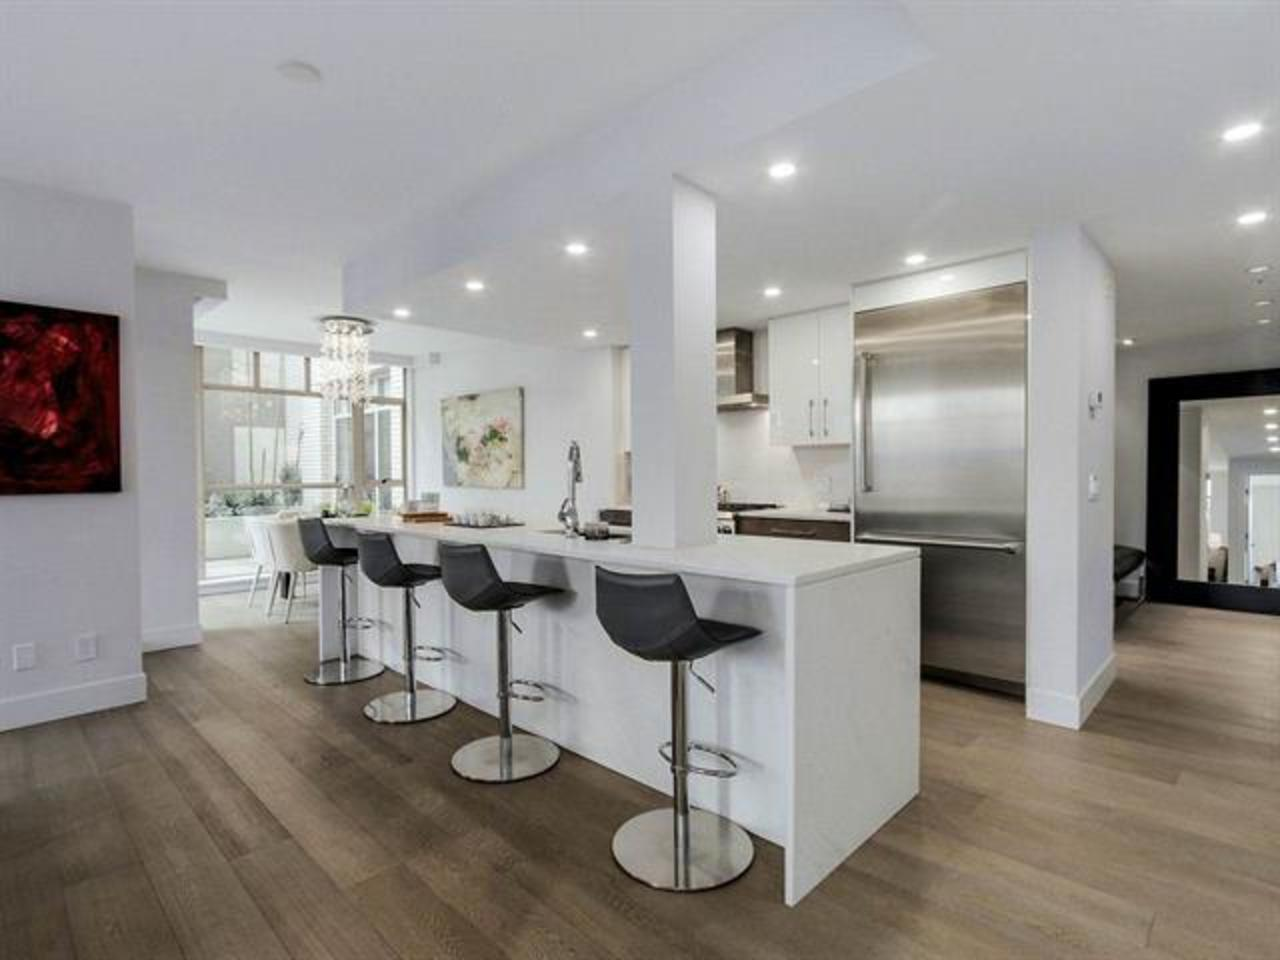 Kitchen at 306 - 5700 Larch Street, Kerrisdale, Vancouver West